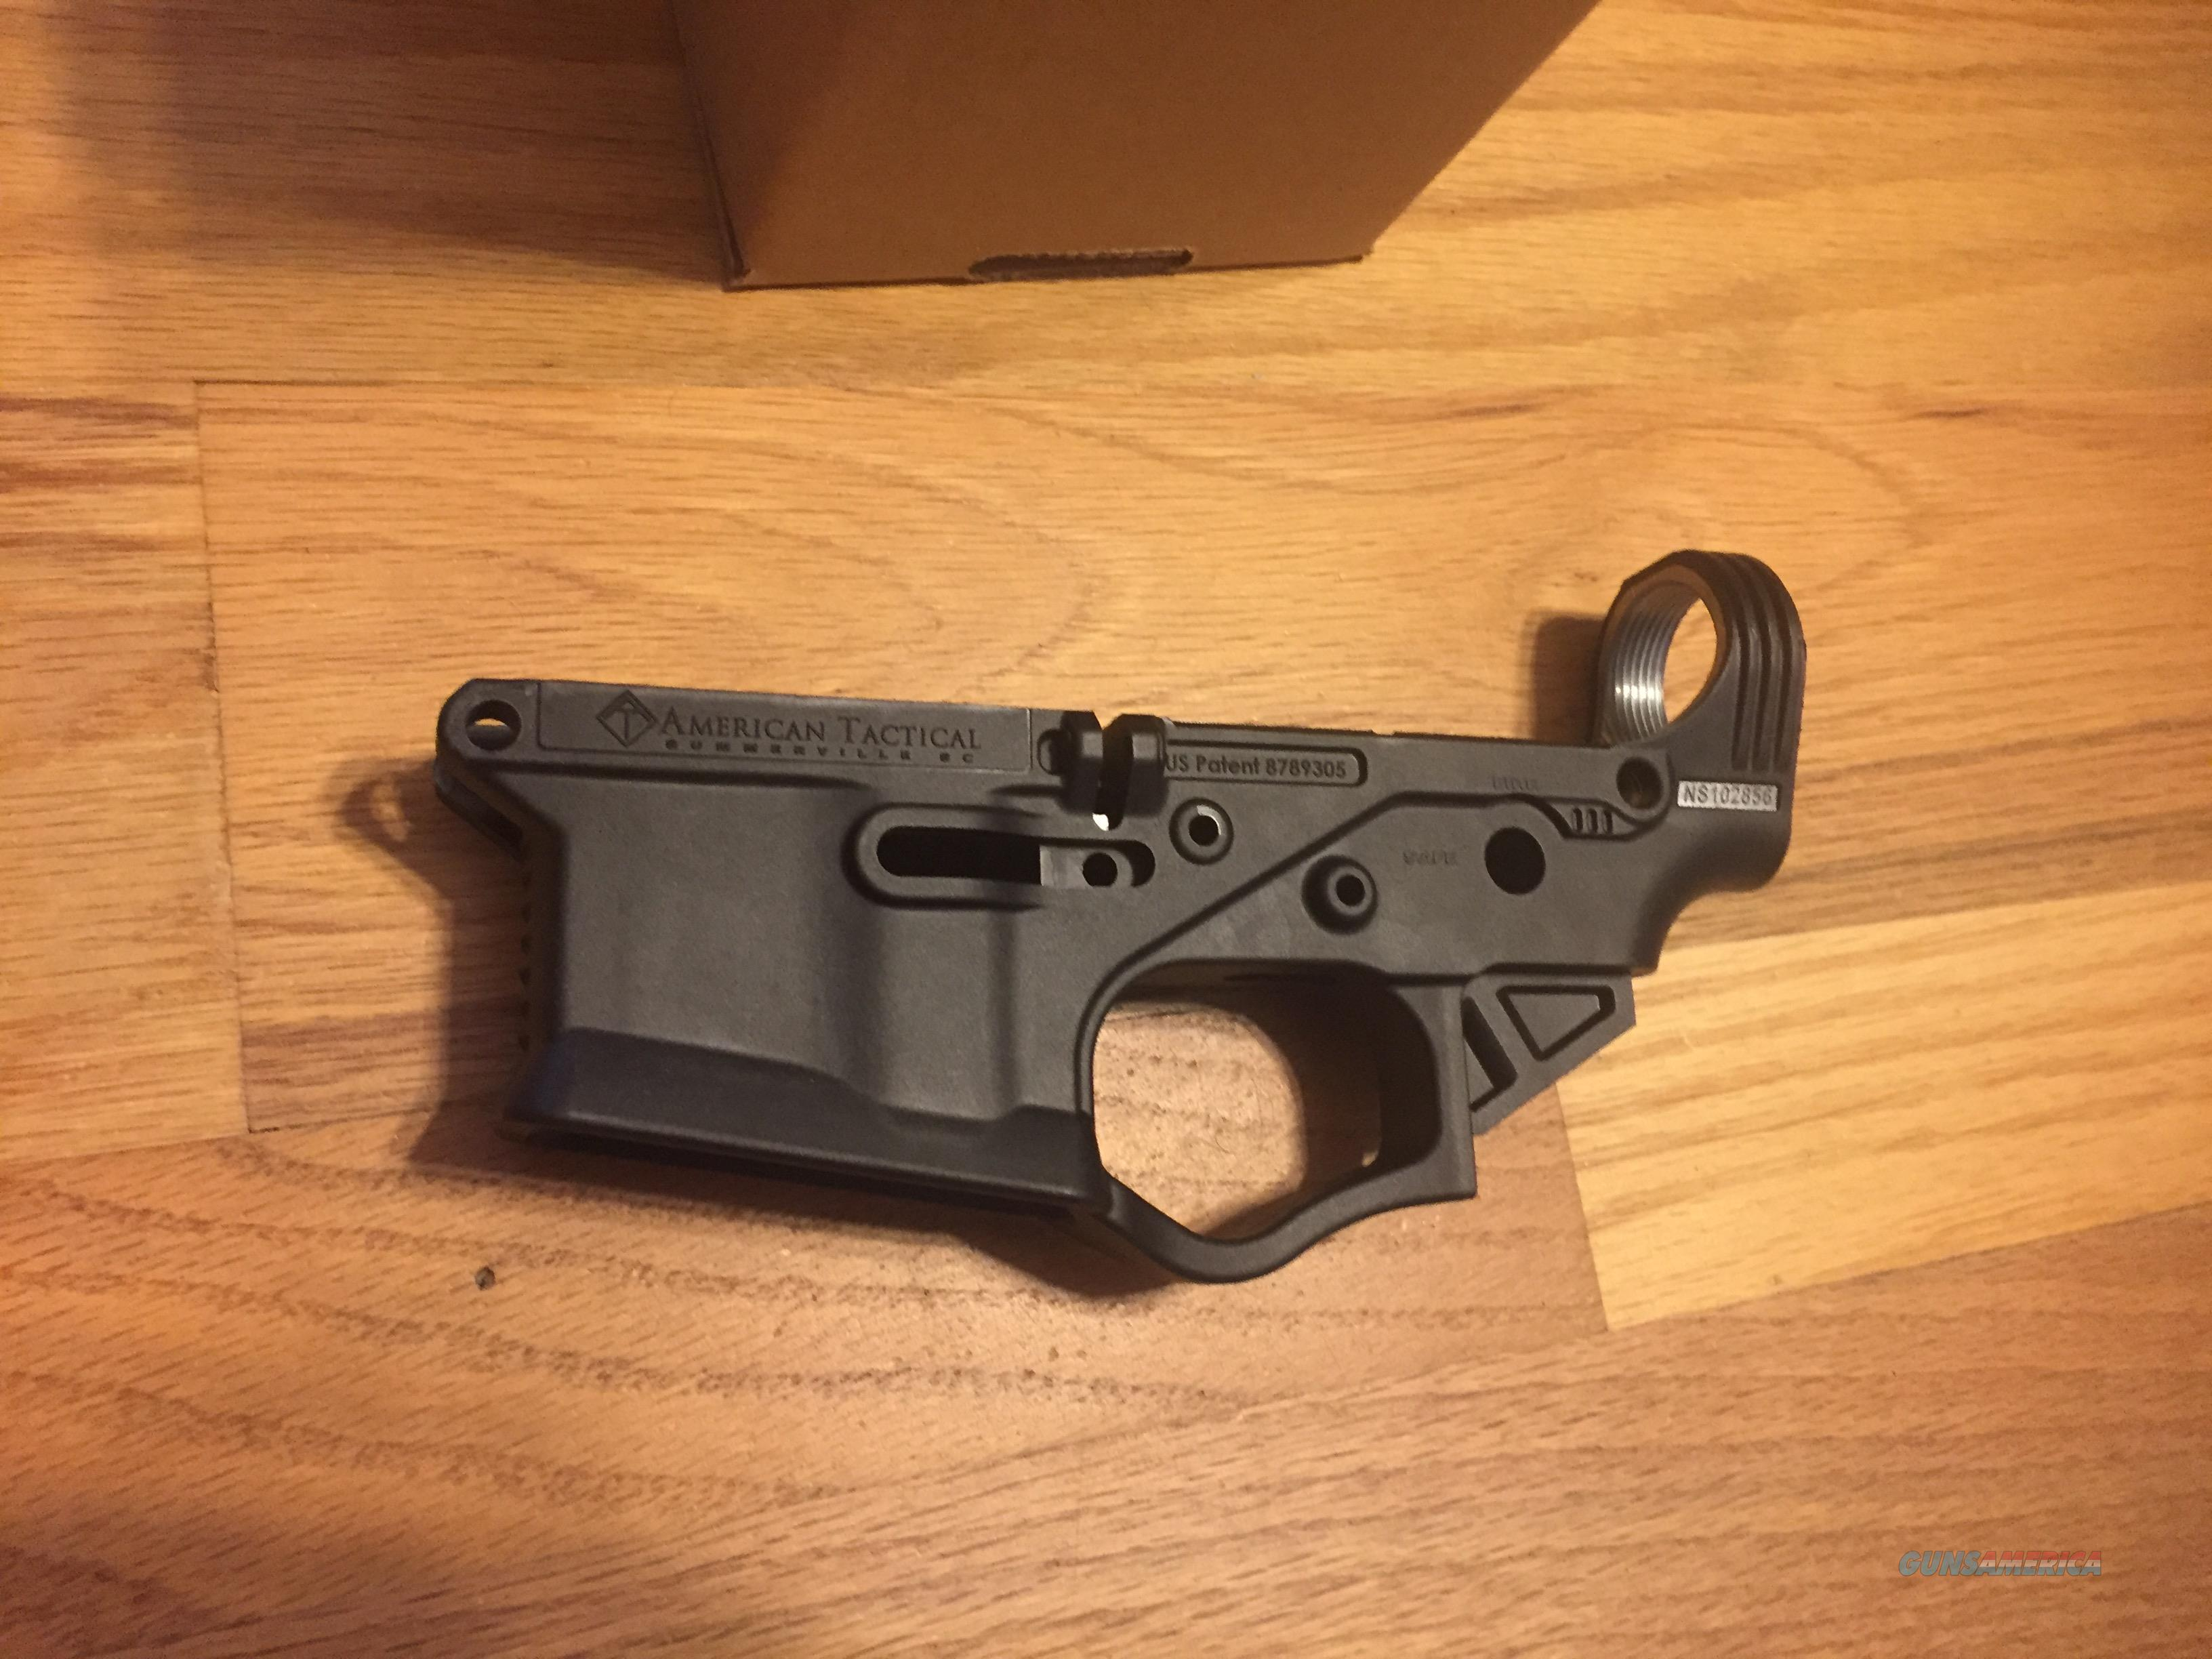 AR15 ATI Omni Hybrid Multi-Cal Stripped Lower Receiver Black ( Free Shipping ) New in Box (No card fees added)  Guns > Rifles > AR-15 Rifles - Small Manufacturers > Lower Only